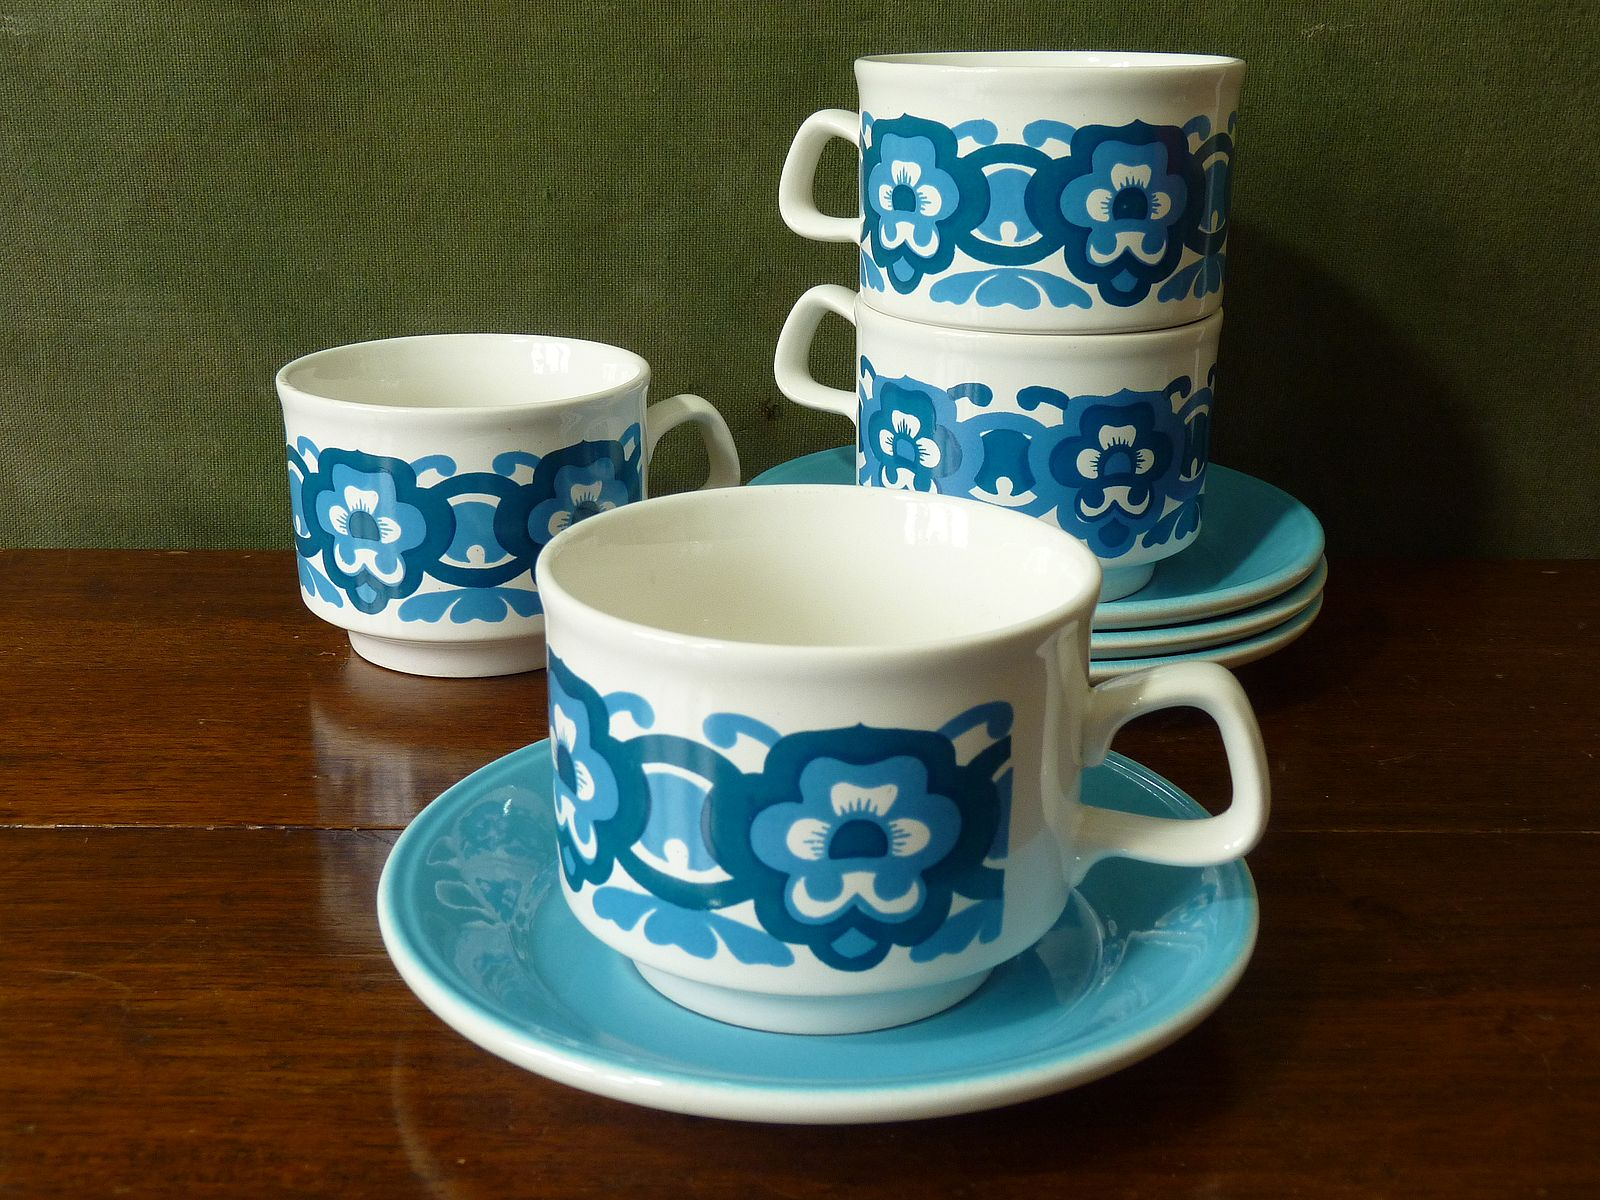 Blue Flower Power Staffordshire Potteries Cups and Saucers